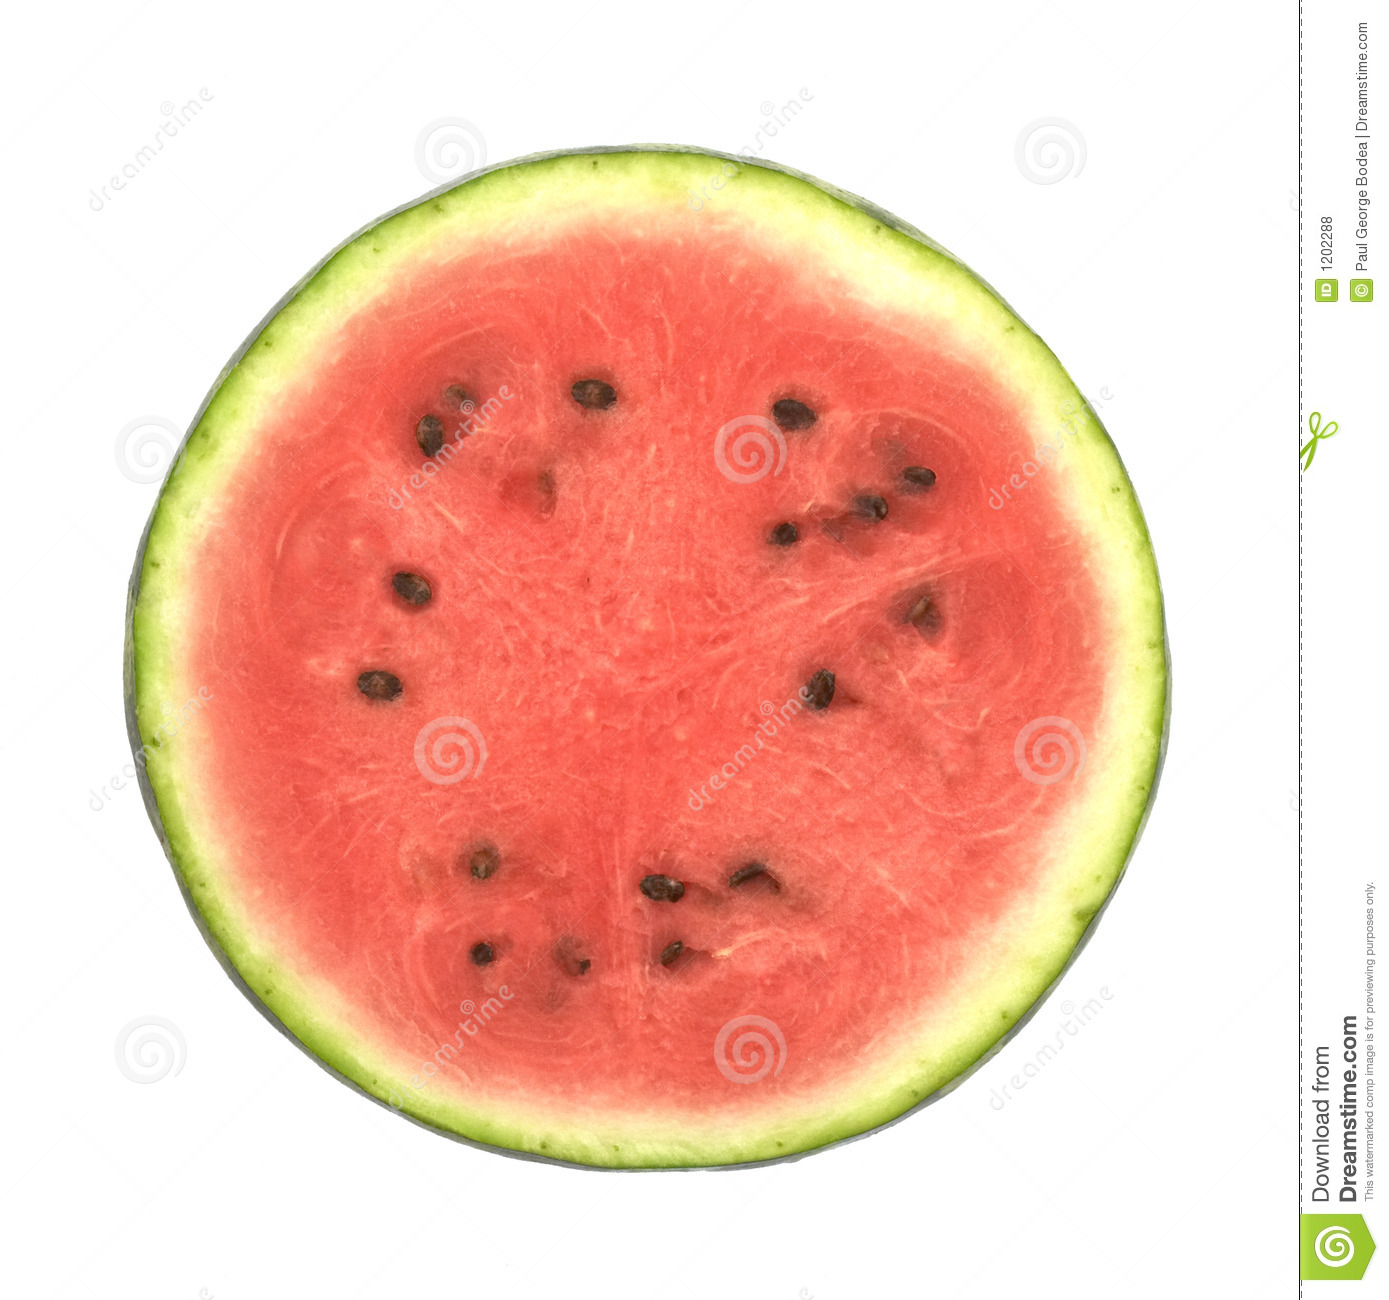 Watermelon Sliced Royalty Free Stock Photos - Image: 1202288